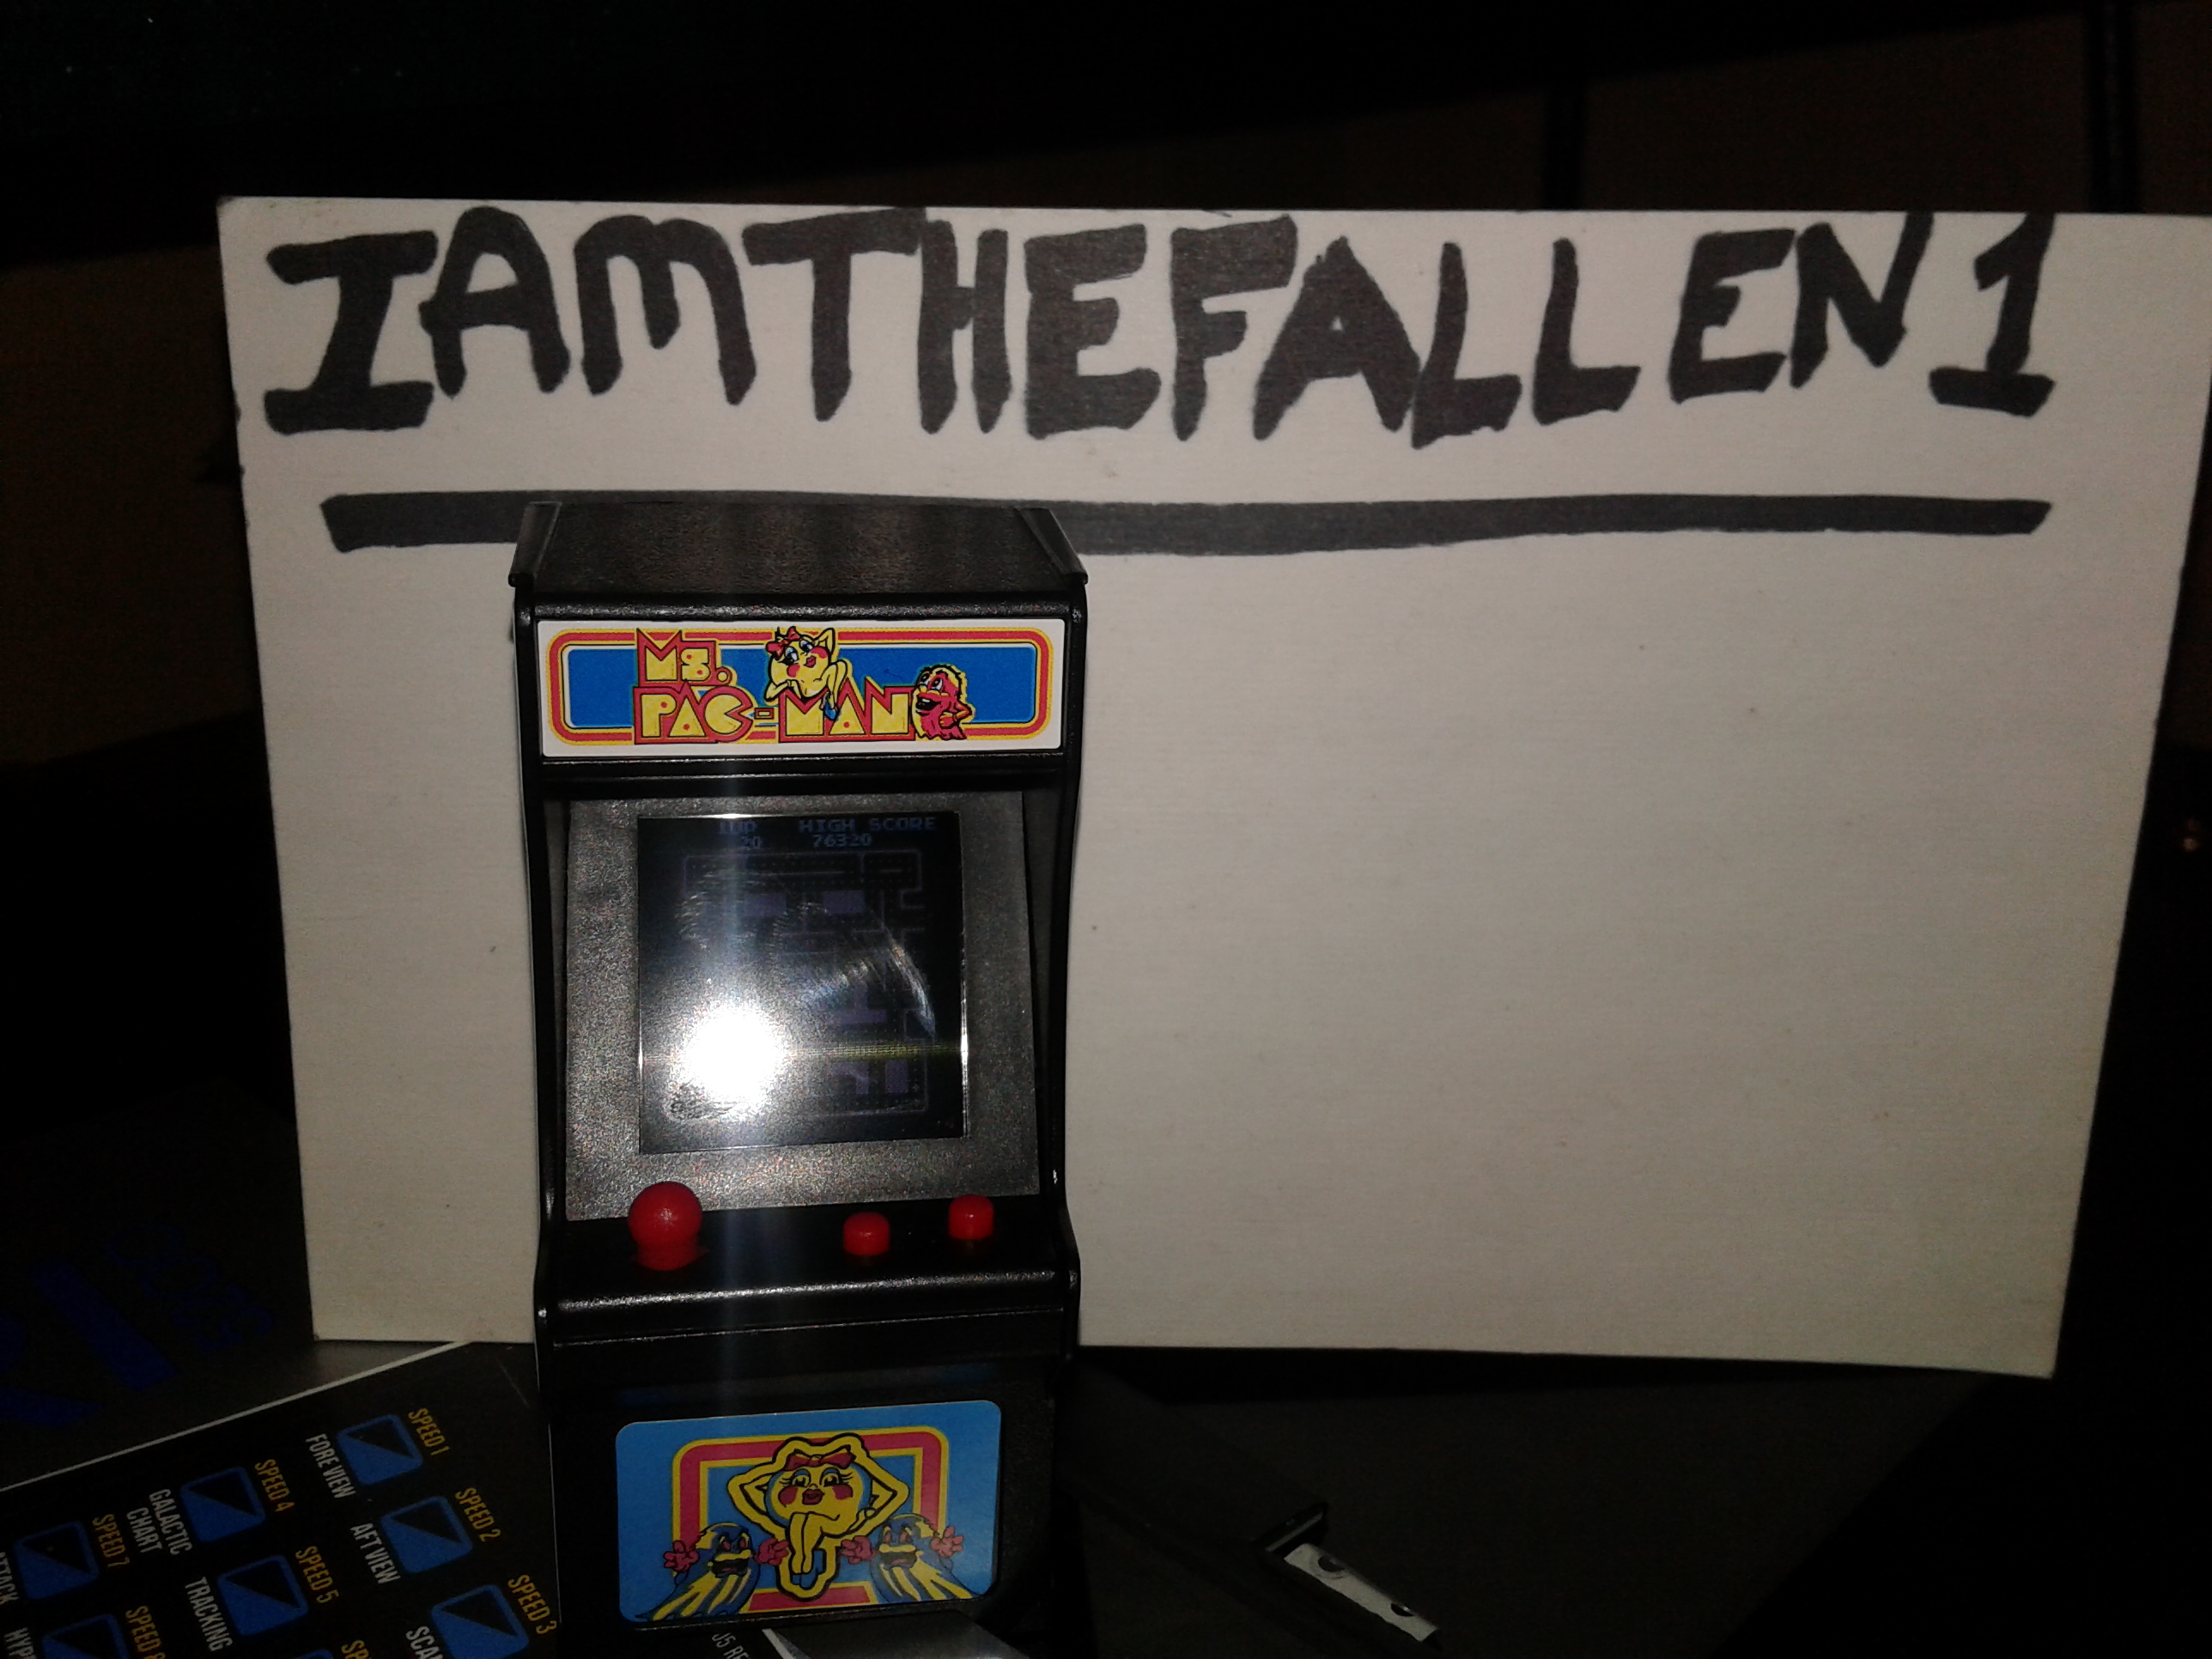 iamthefallen1: Tiny Arcade: Ms. Pac Man (Dedicated Handheld) 76,320 points on 2018-05-13 11:30:58